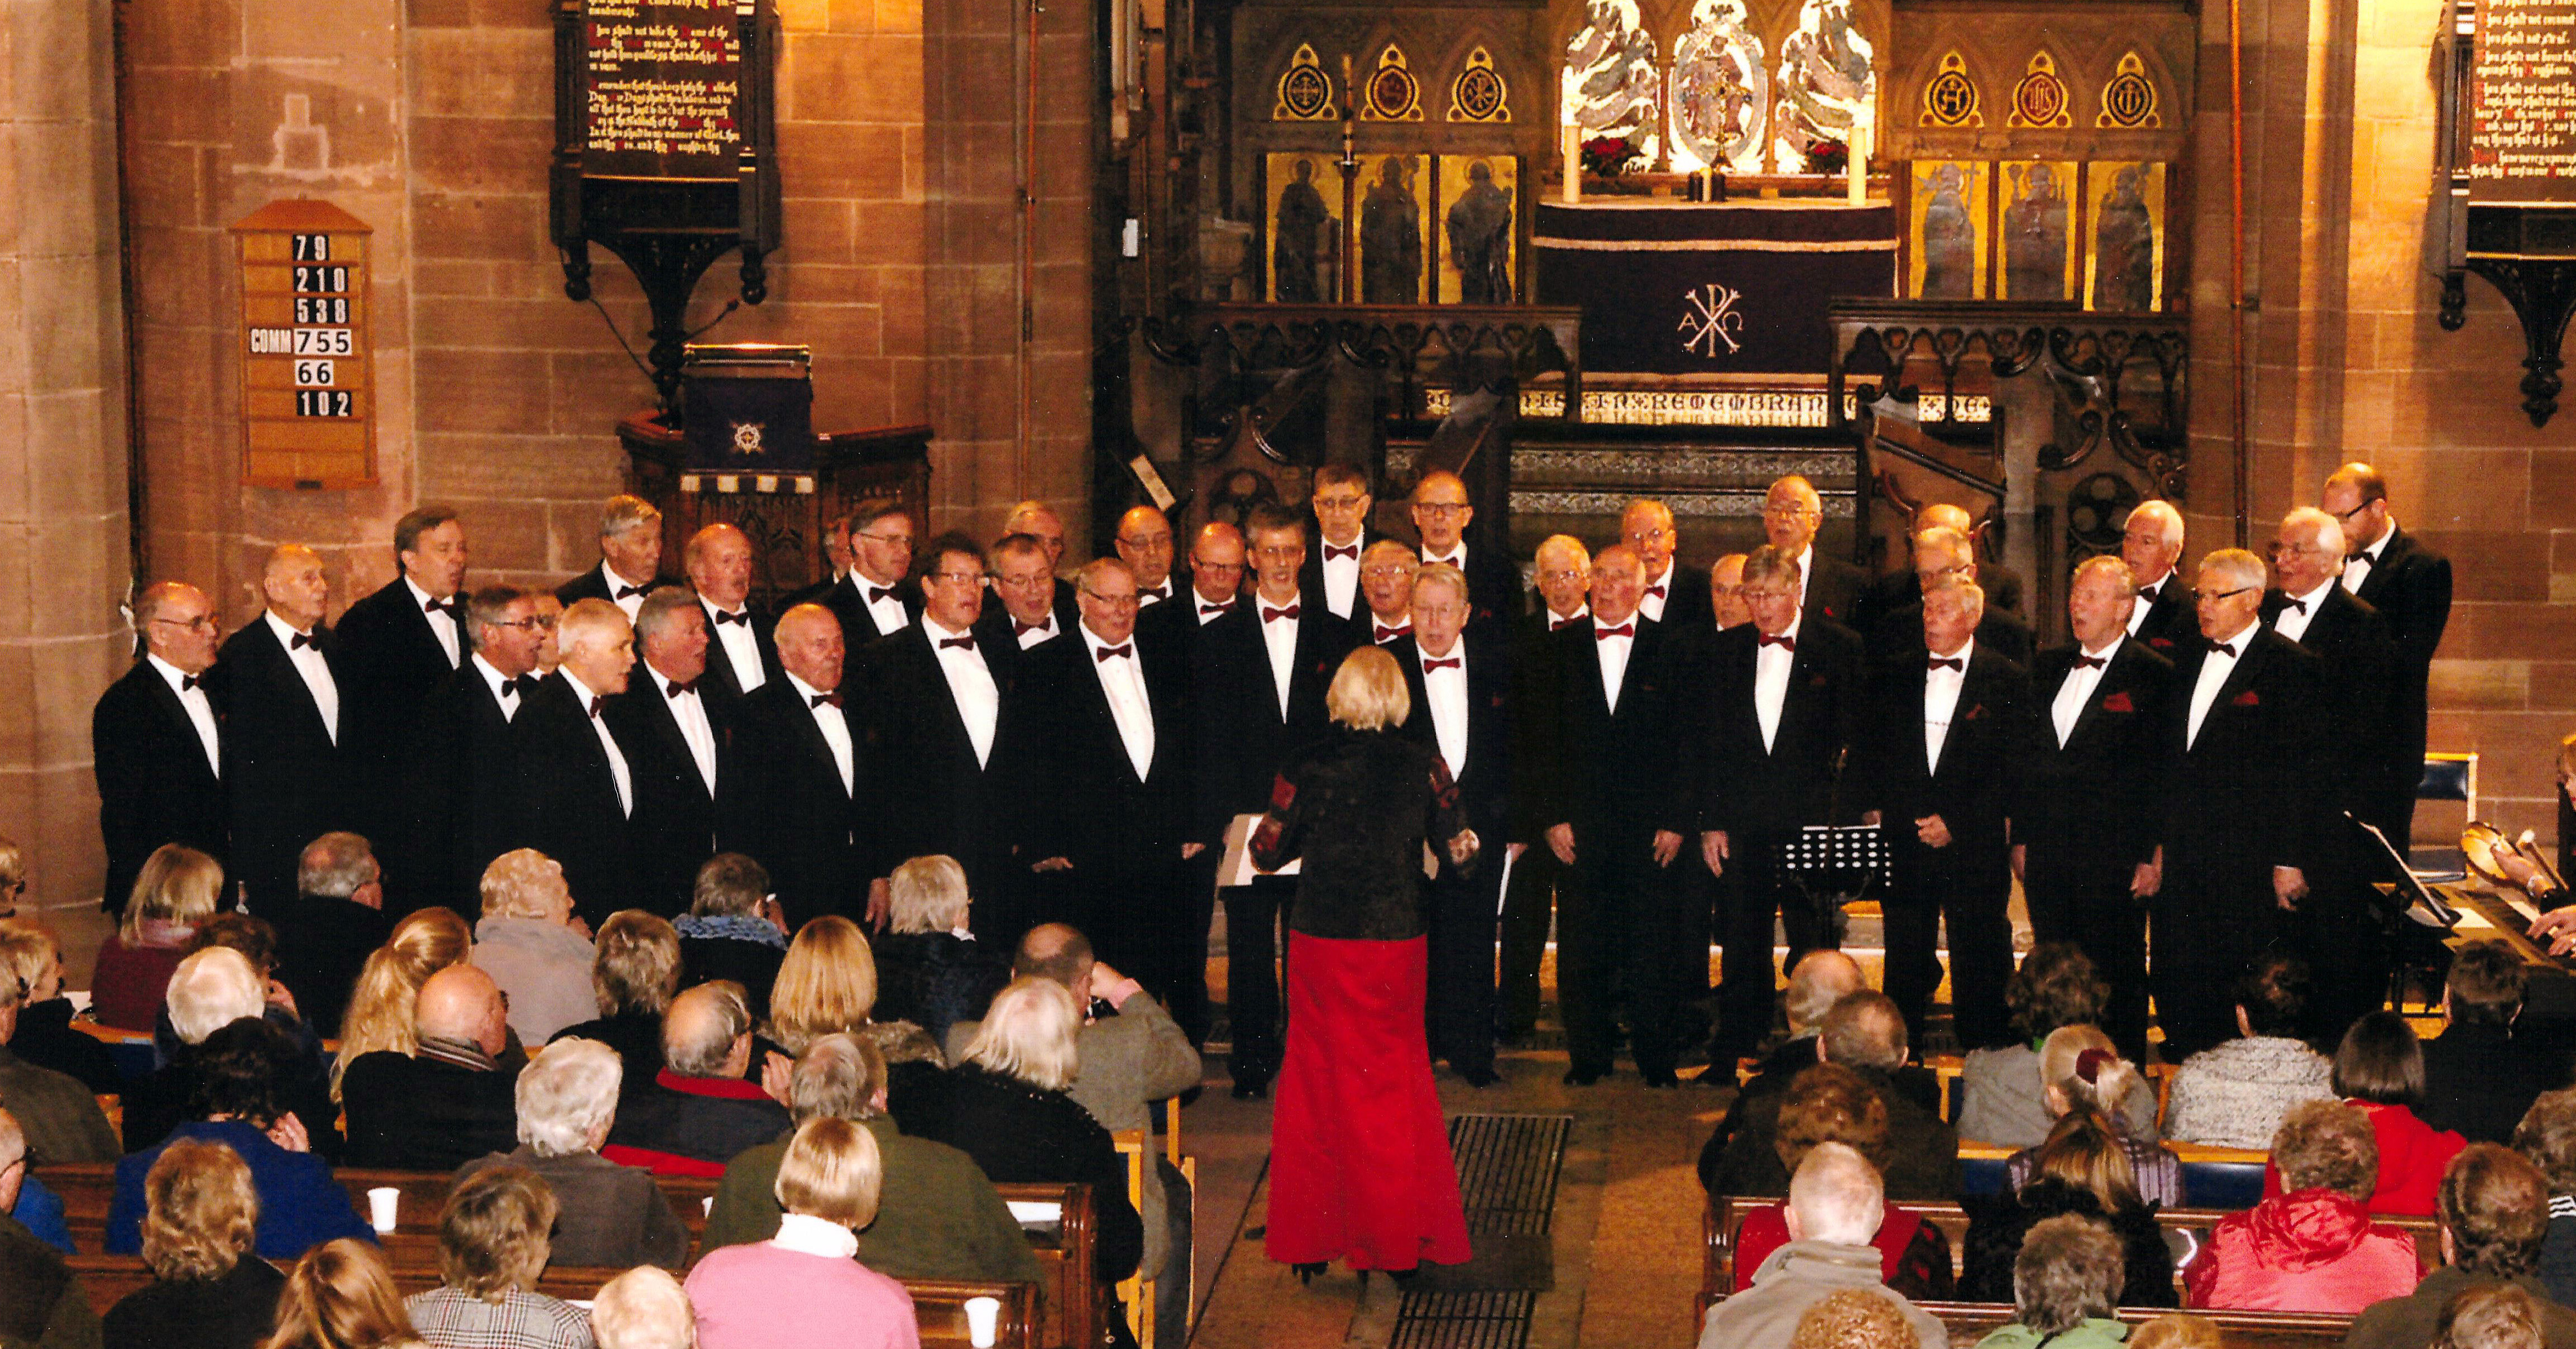 Newport (Salop) & District Male Voice Choir performing at our Christmas Concert at St Nicholas Church, Newport, TF10 on 19th December 2014